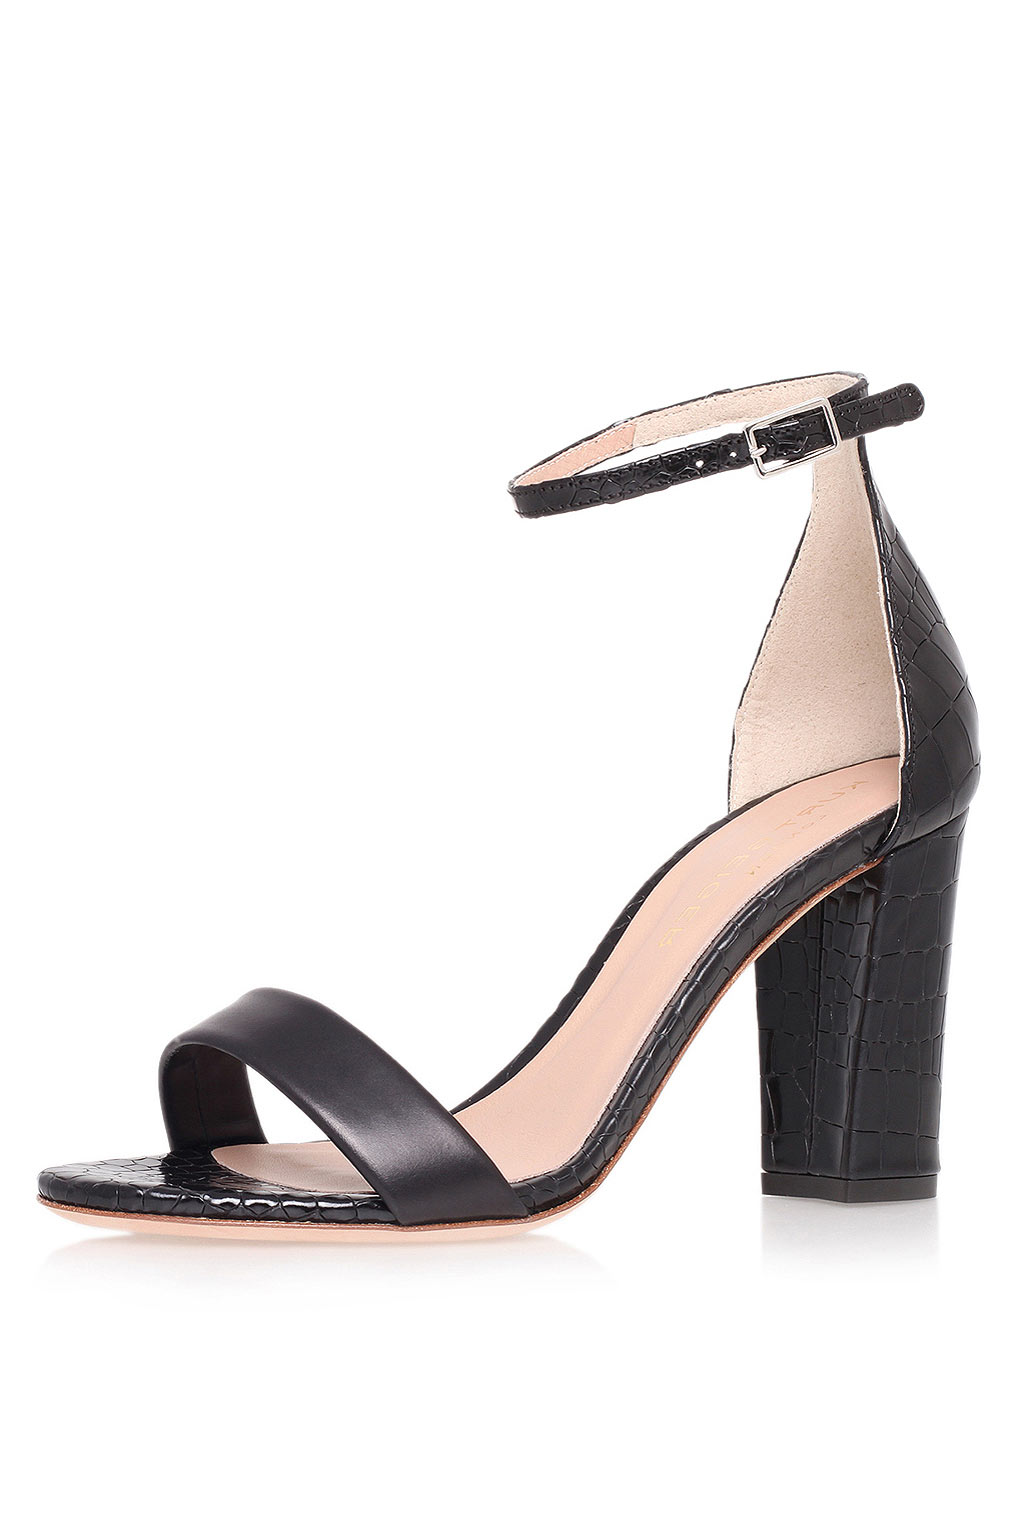 Block Ankle Strap Sandals | What Trends Are For